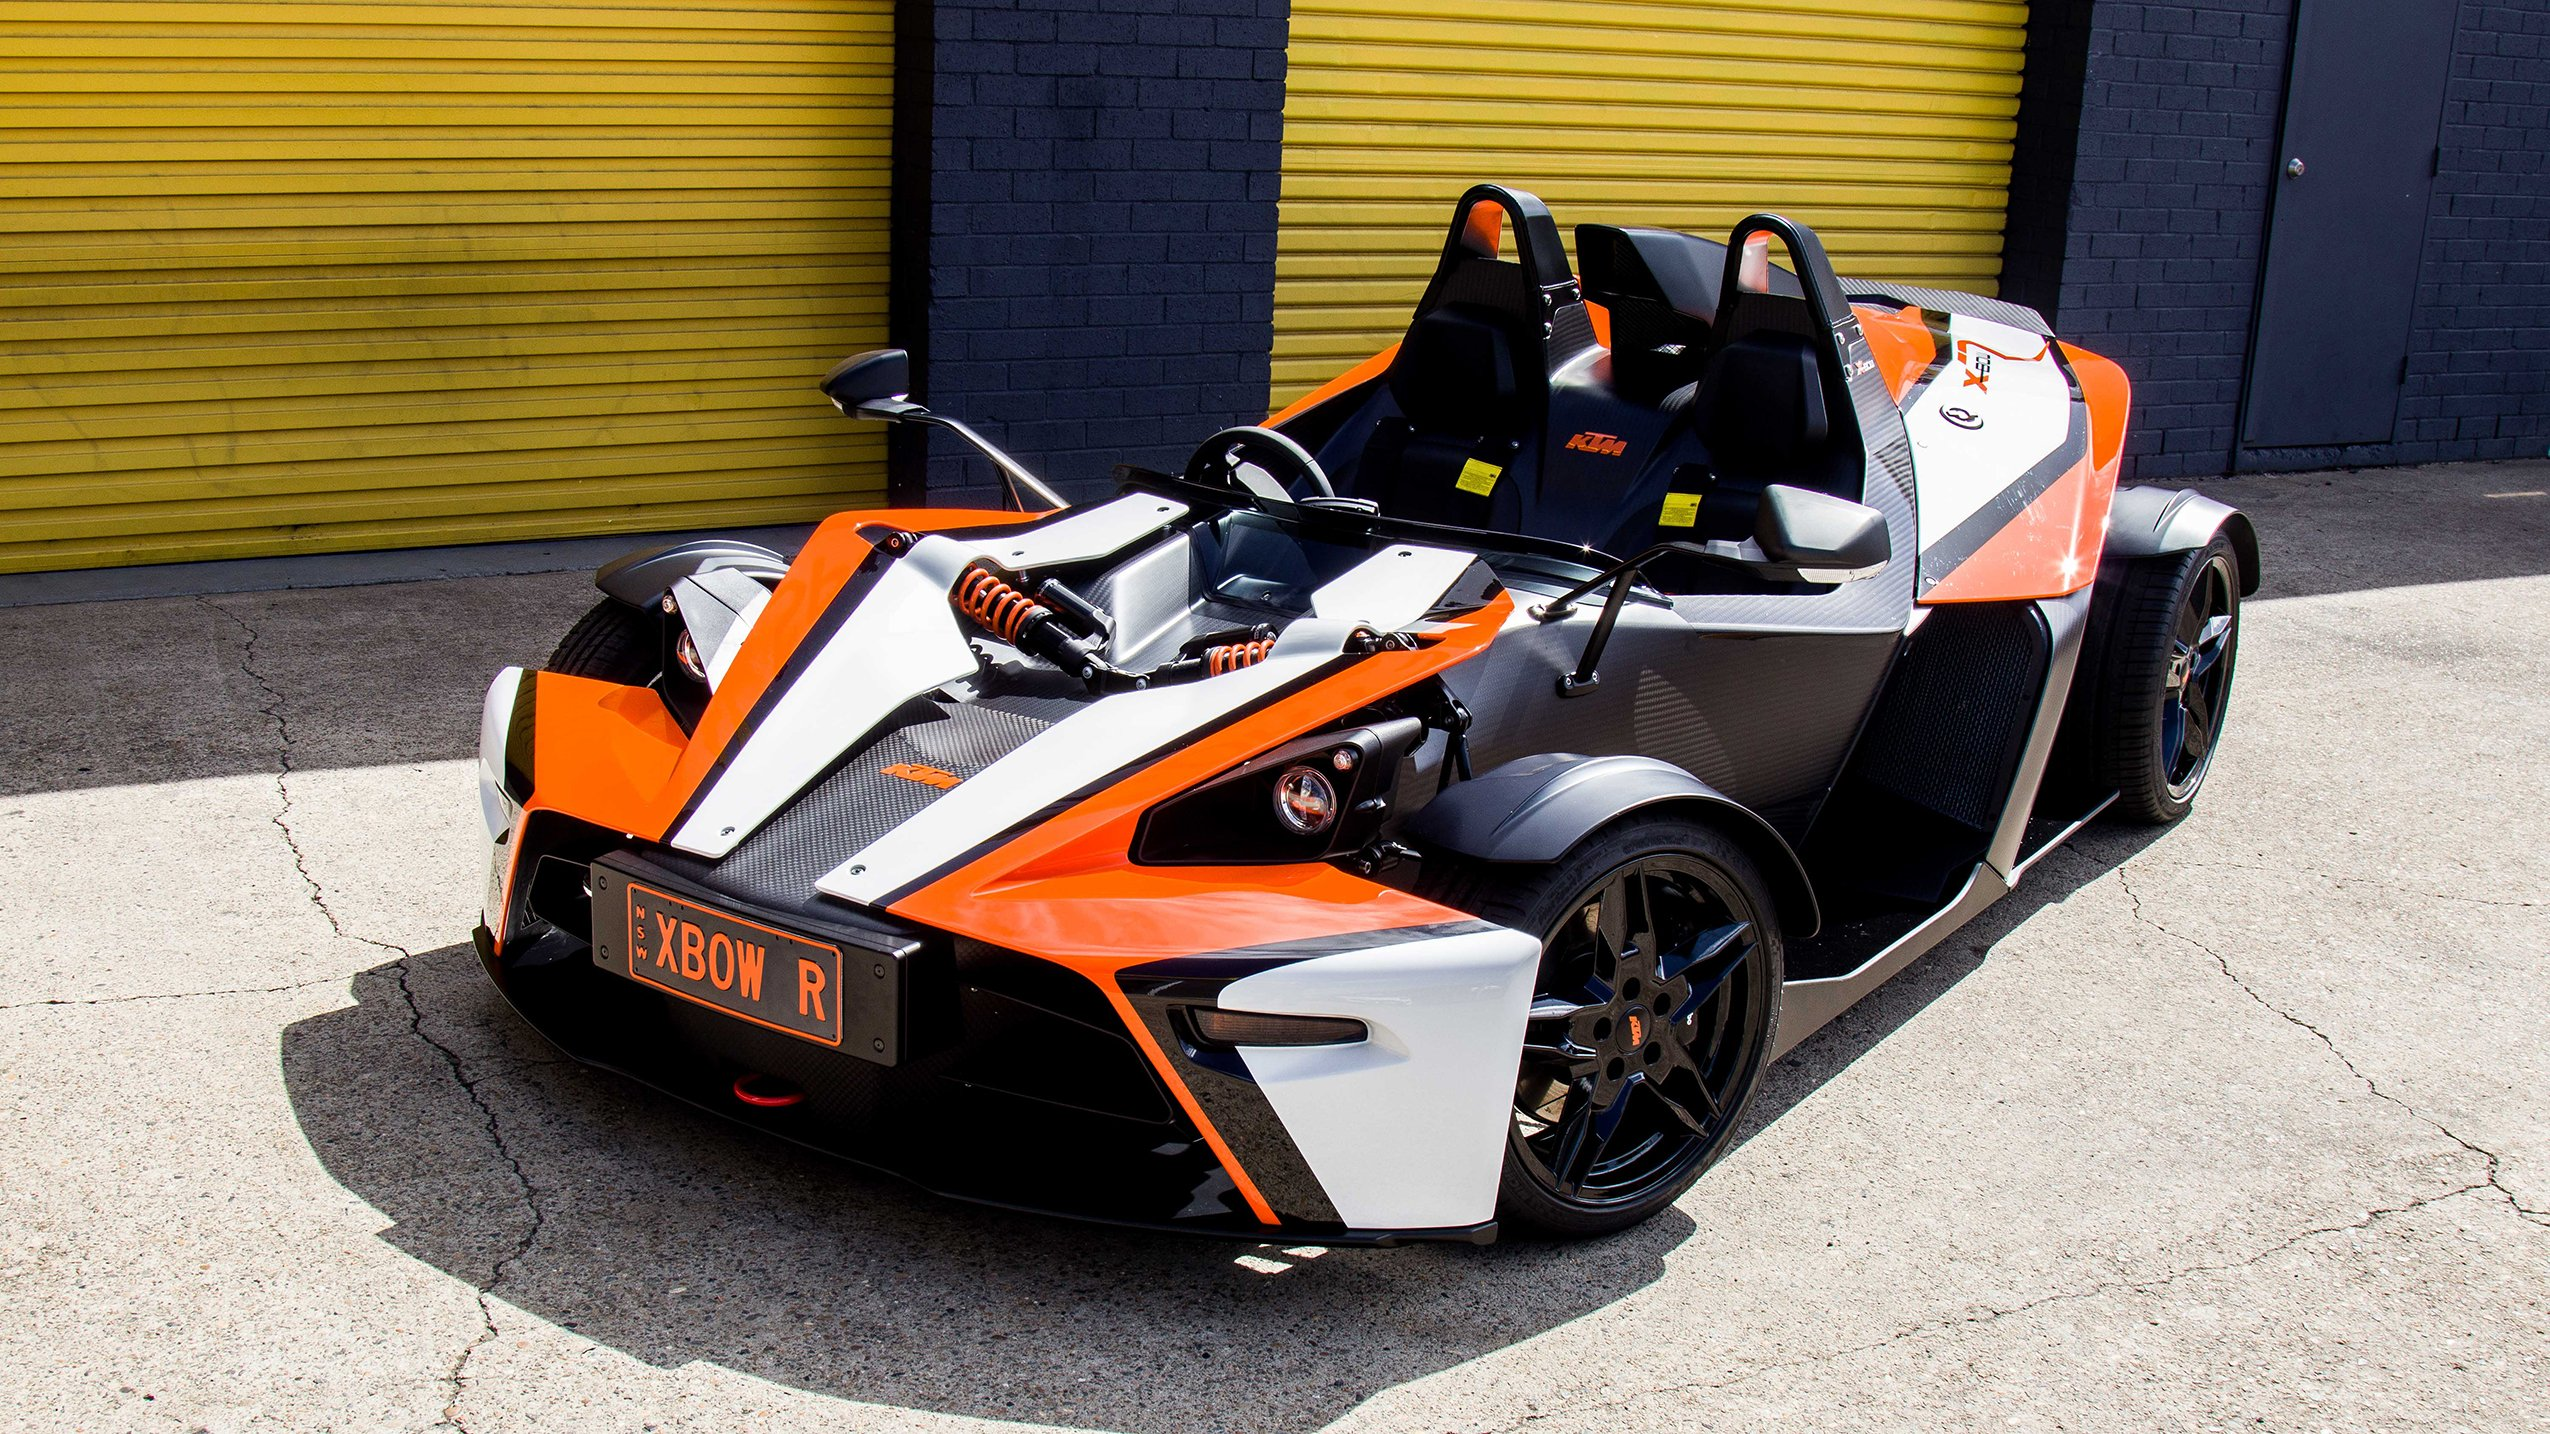 Ktm X Bow On Sale In Australia And It S Street Legal